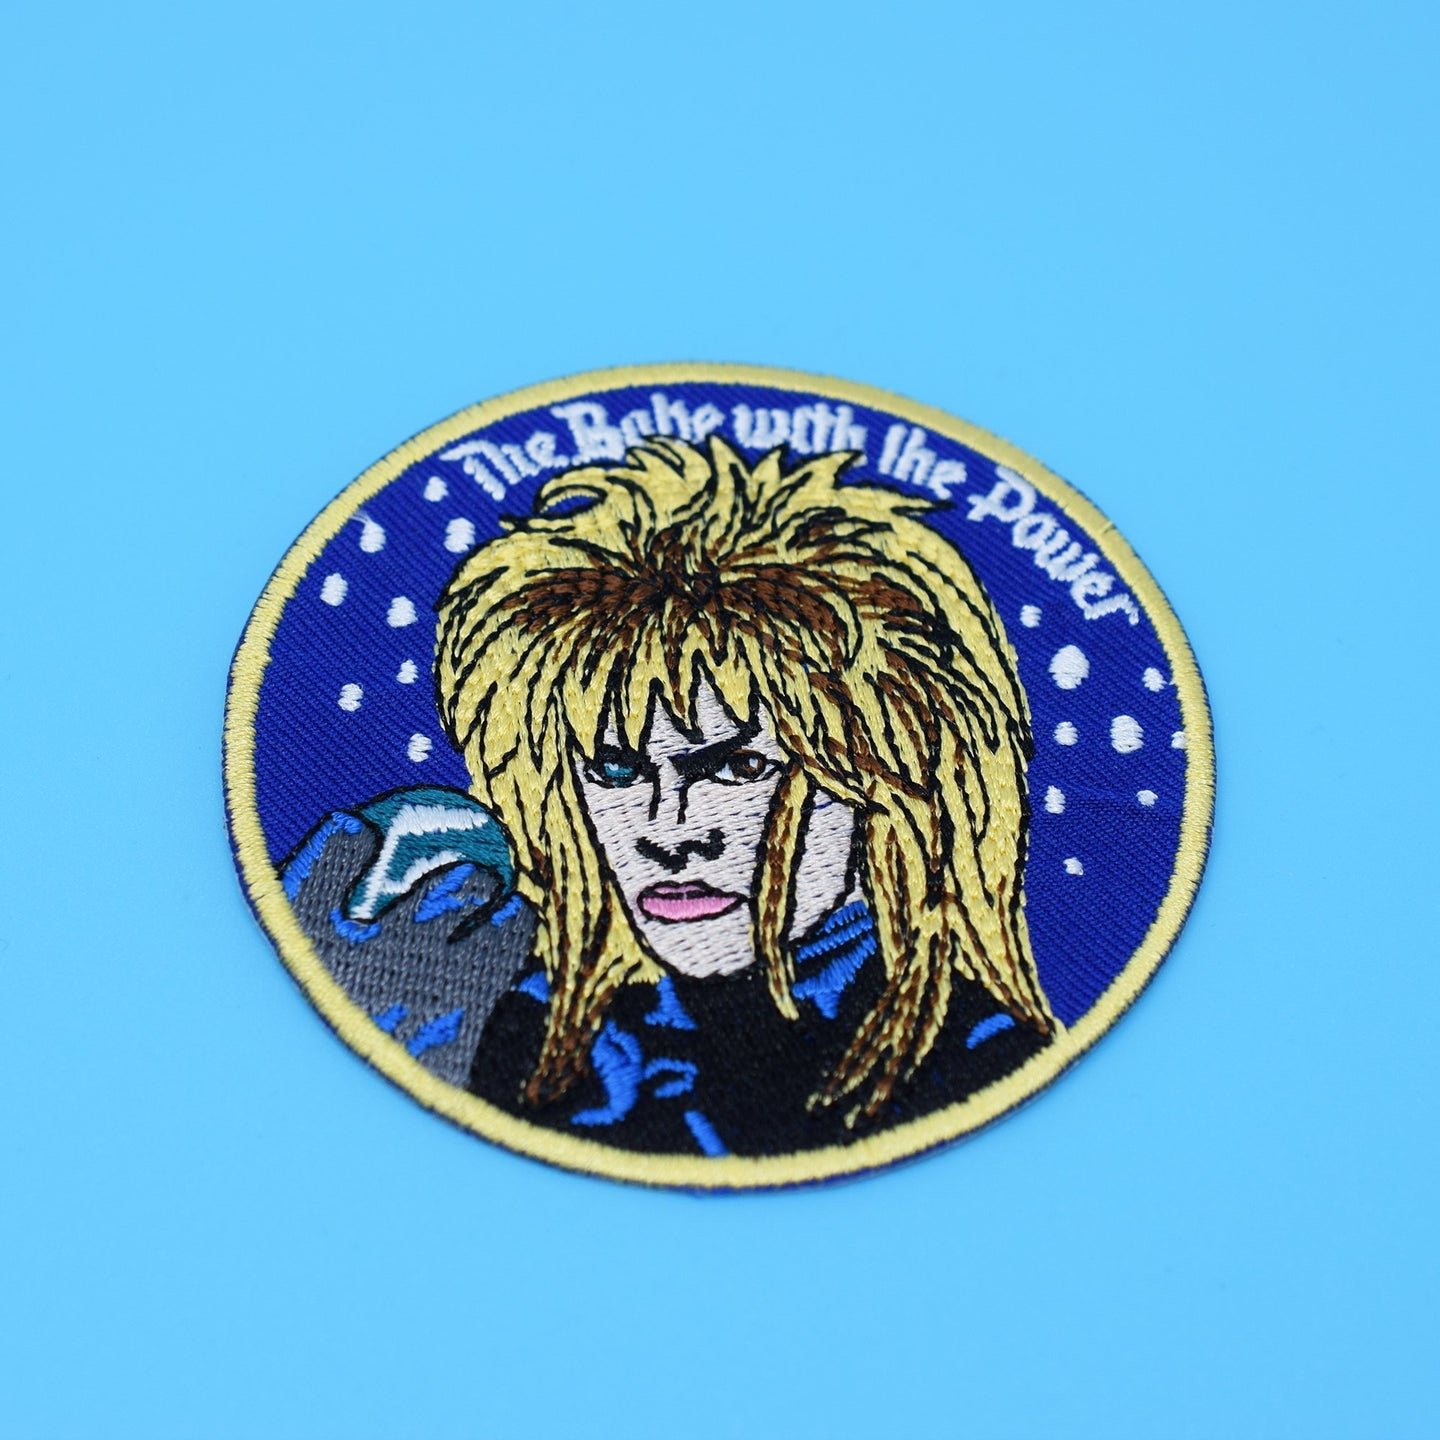 Jareth Goblin King Patch